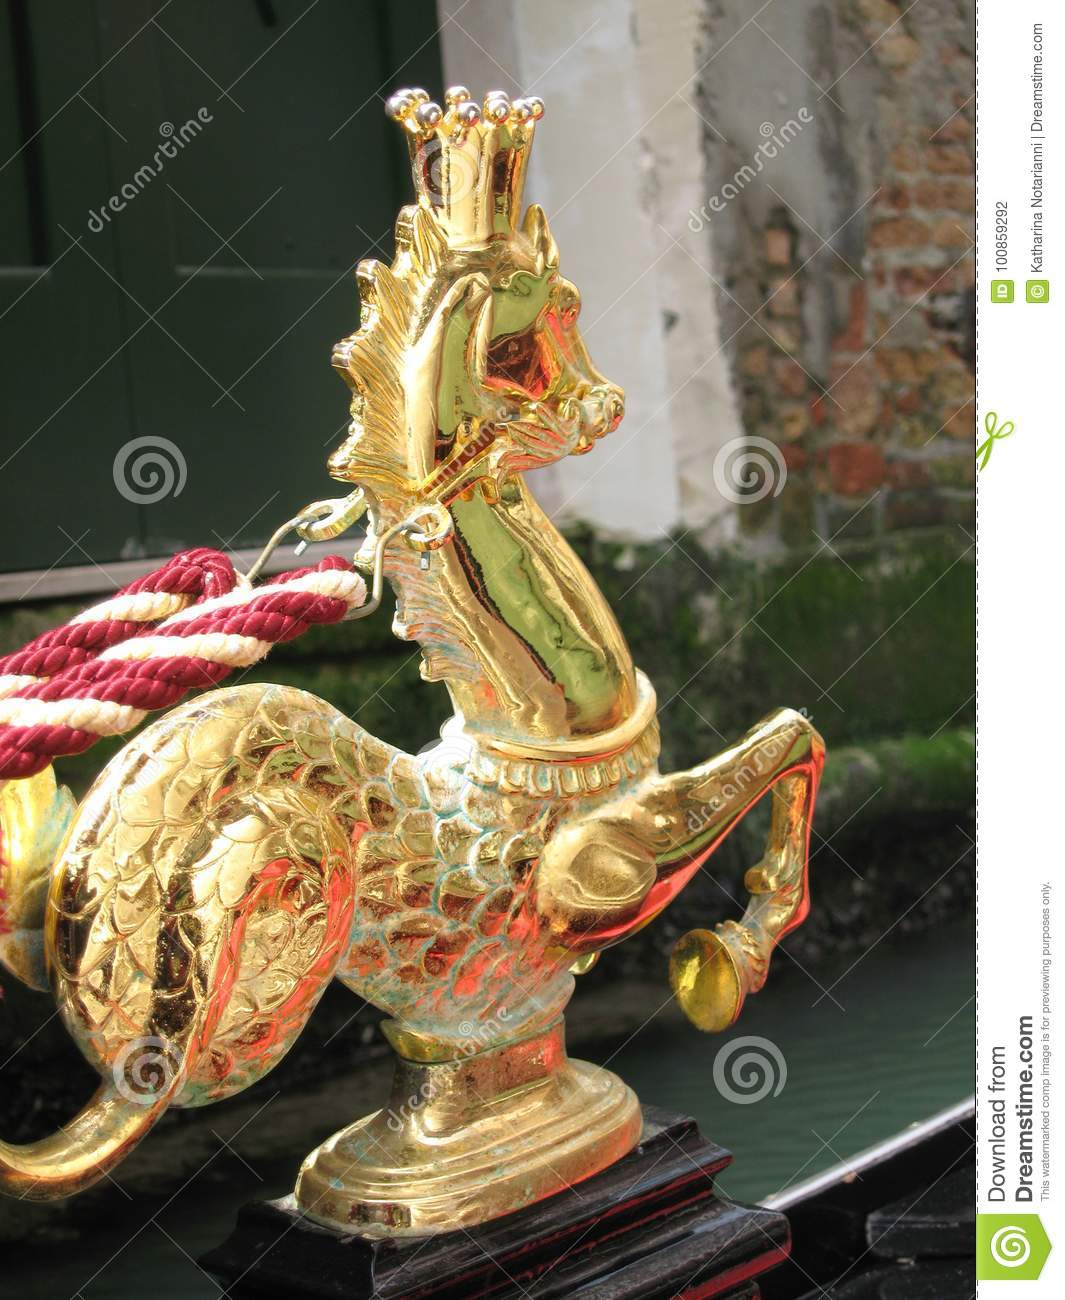 Golden Seahorse with Crown on Gondola in Venice